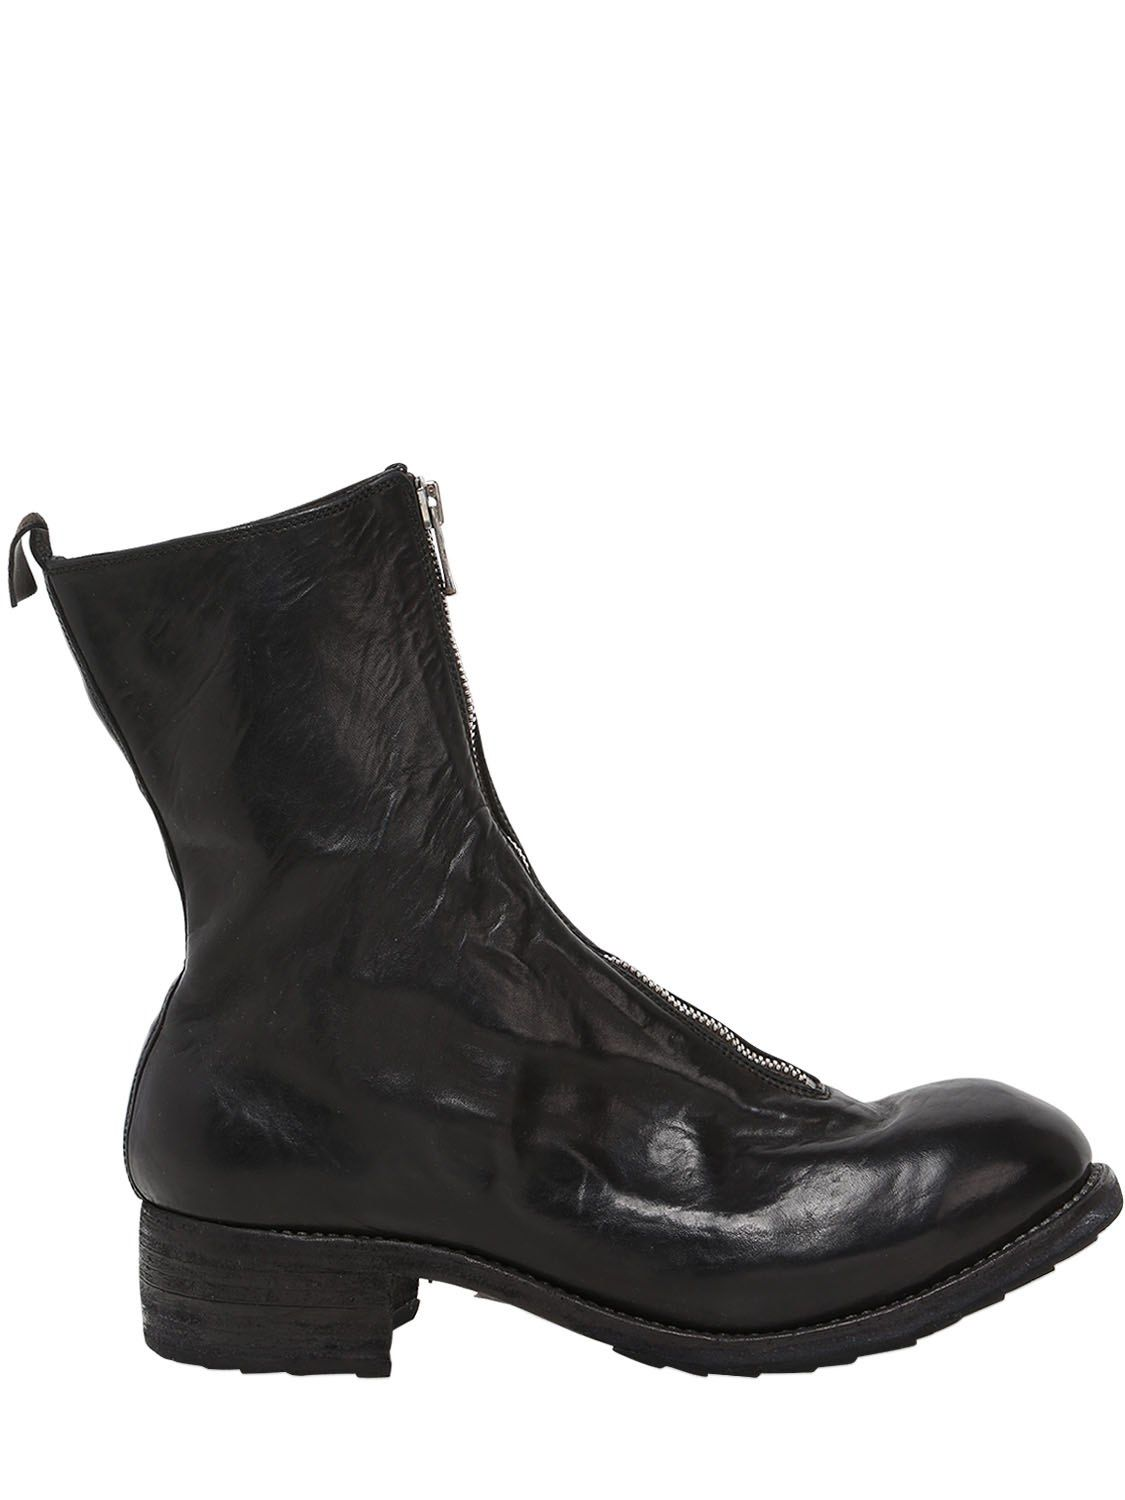 GUIDI PL2 ZIP-UP LEATHER BOOTS UOj1hDl0A